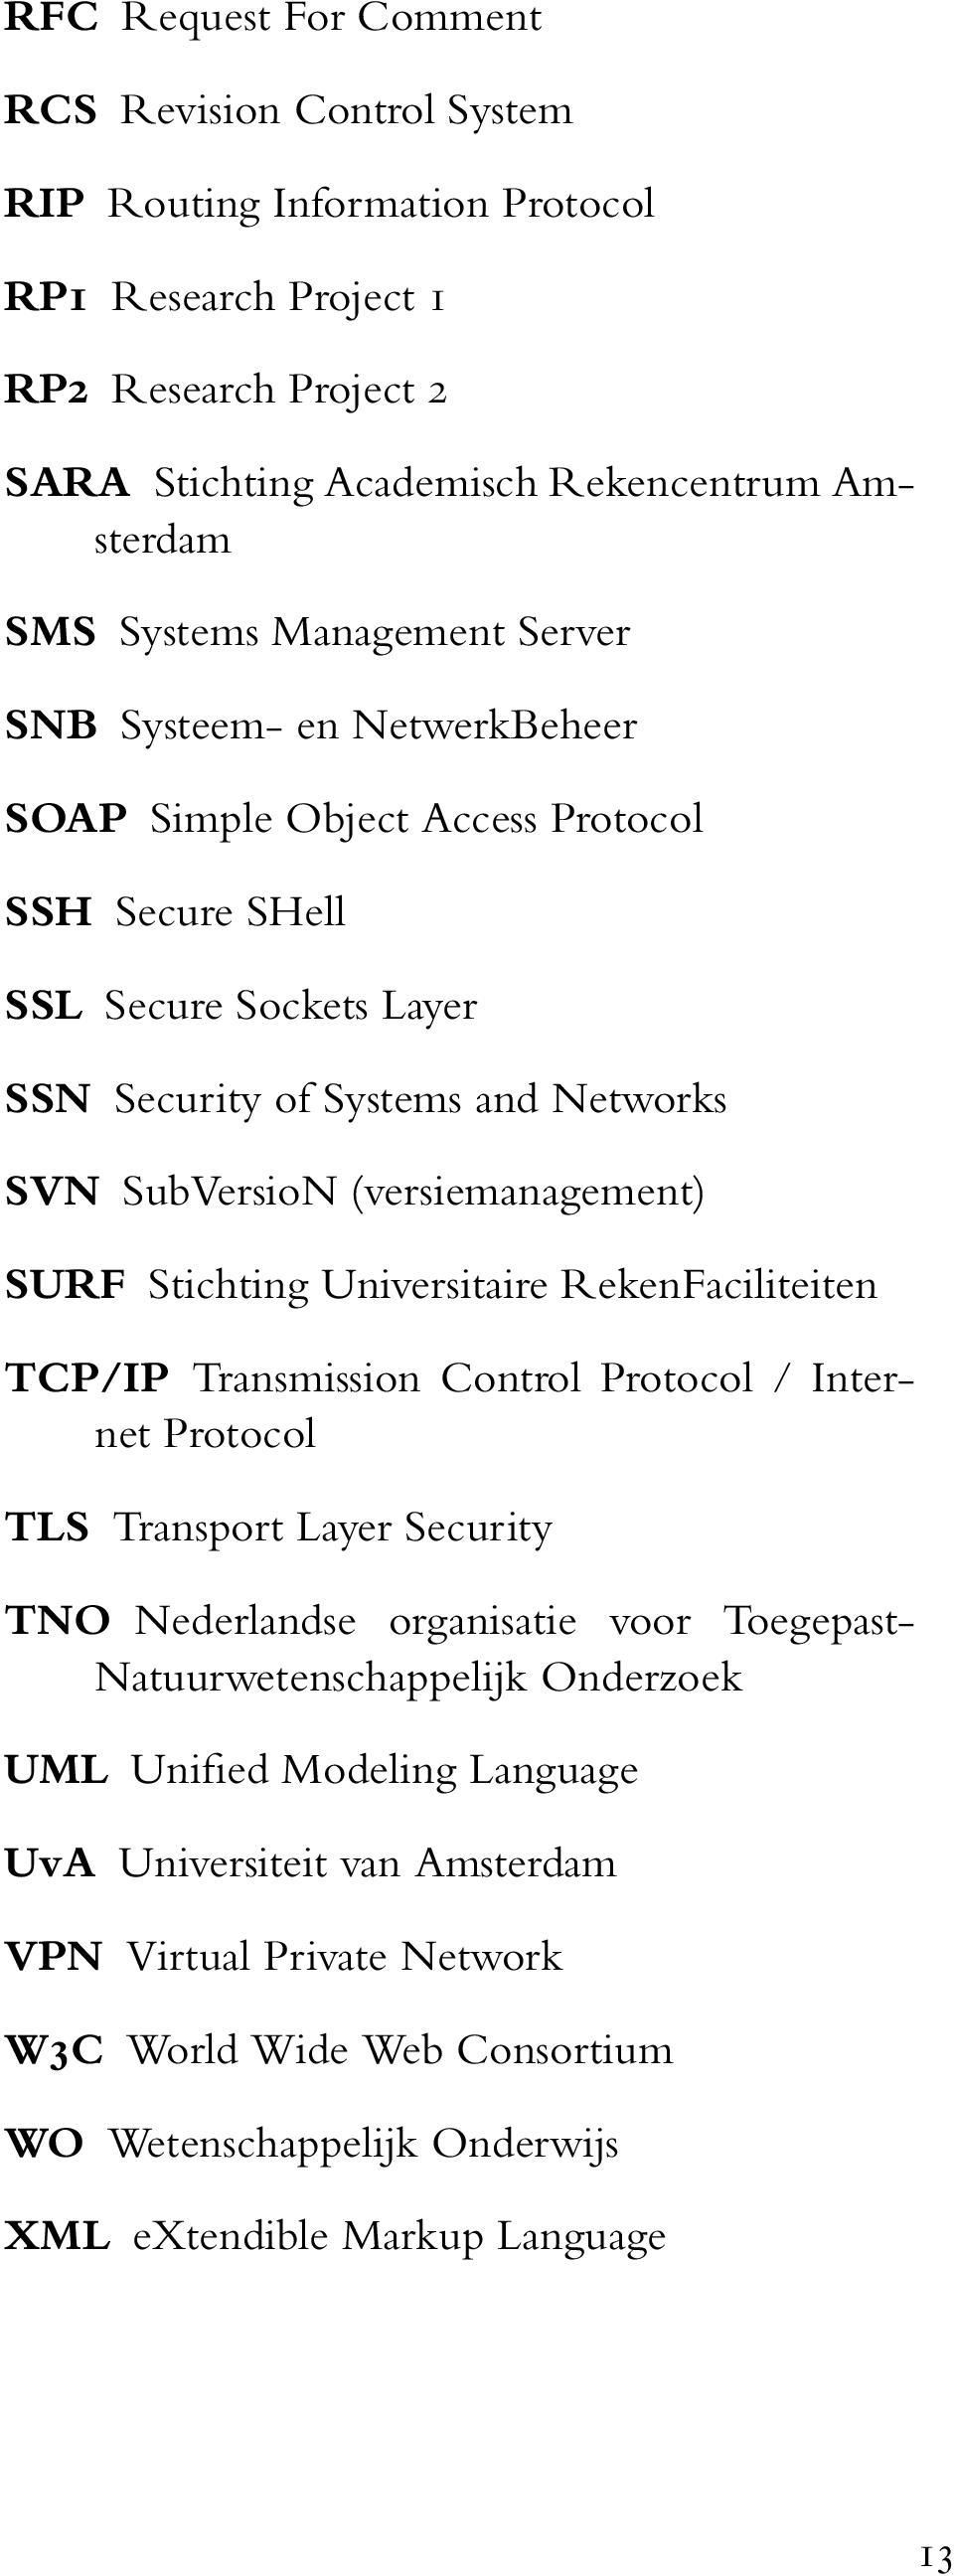 (versiemanagement) SURF Stichting Universitaire RekenFaciliteiten TCP/IP Transmission Control Protocol / Internet Protocol TLS Transport Layer Security TNO Nederlandse organisatie voor